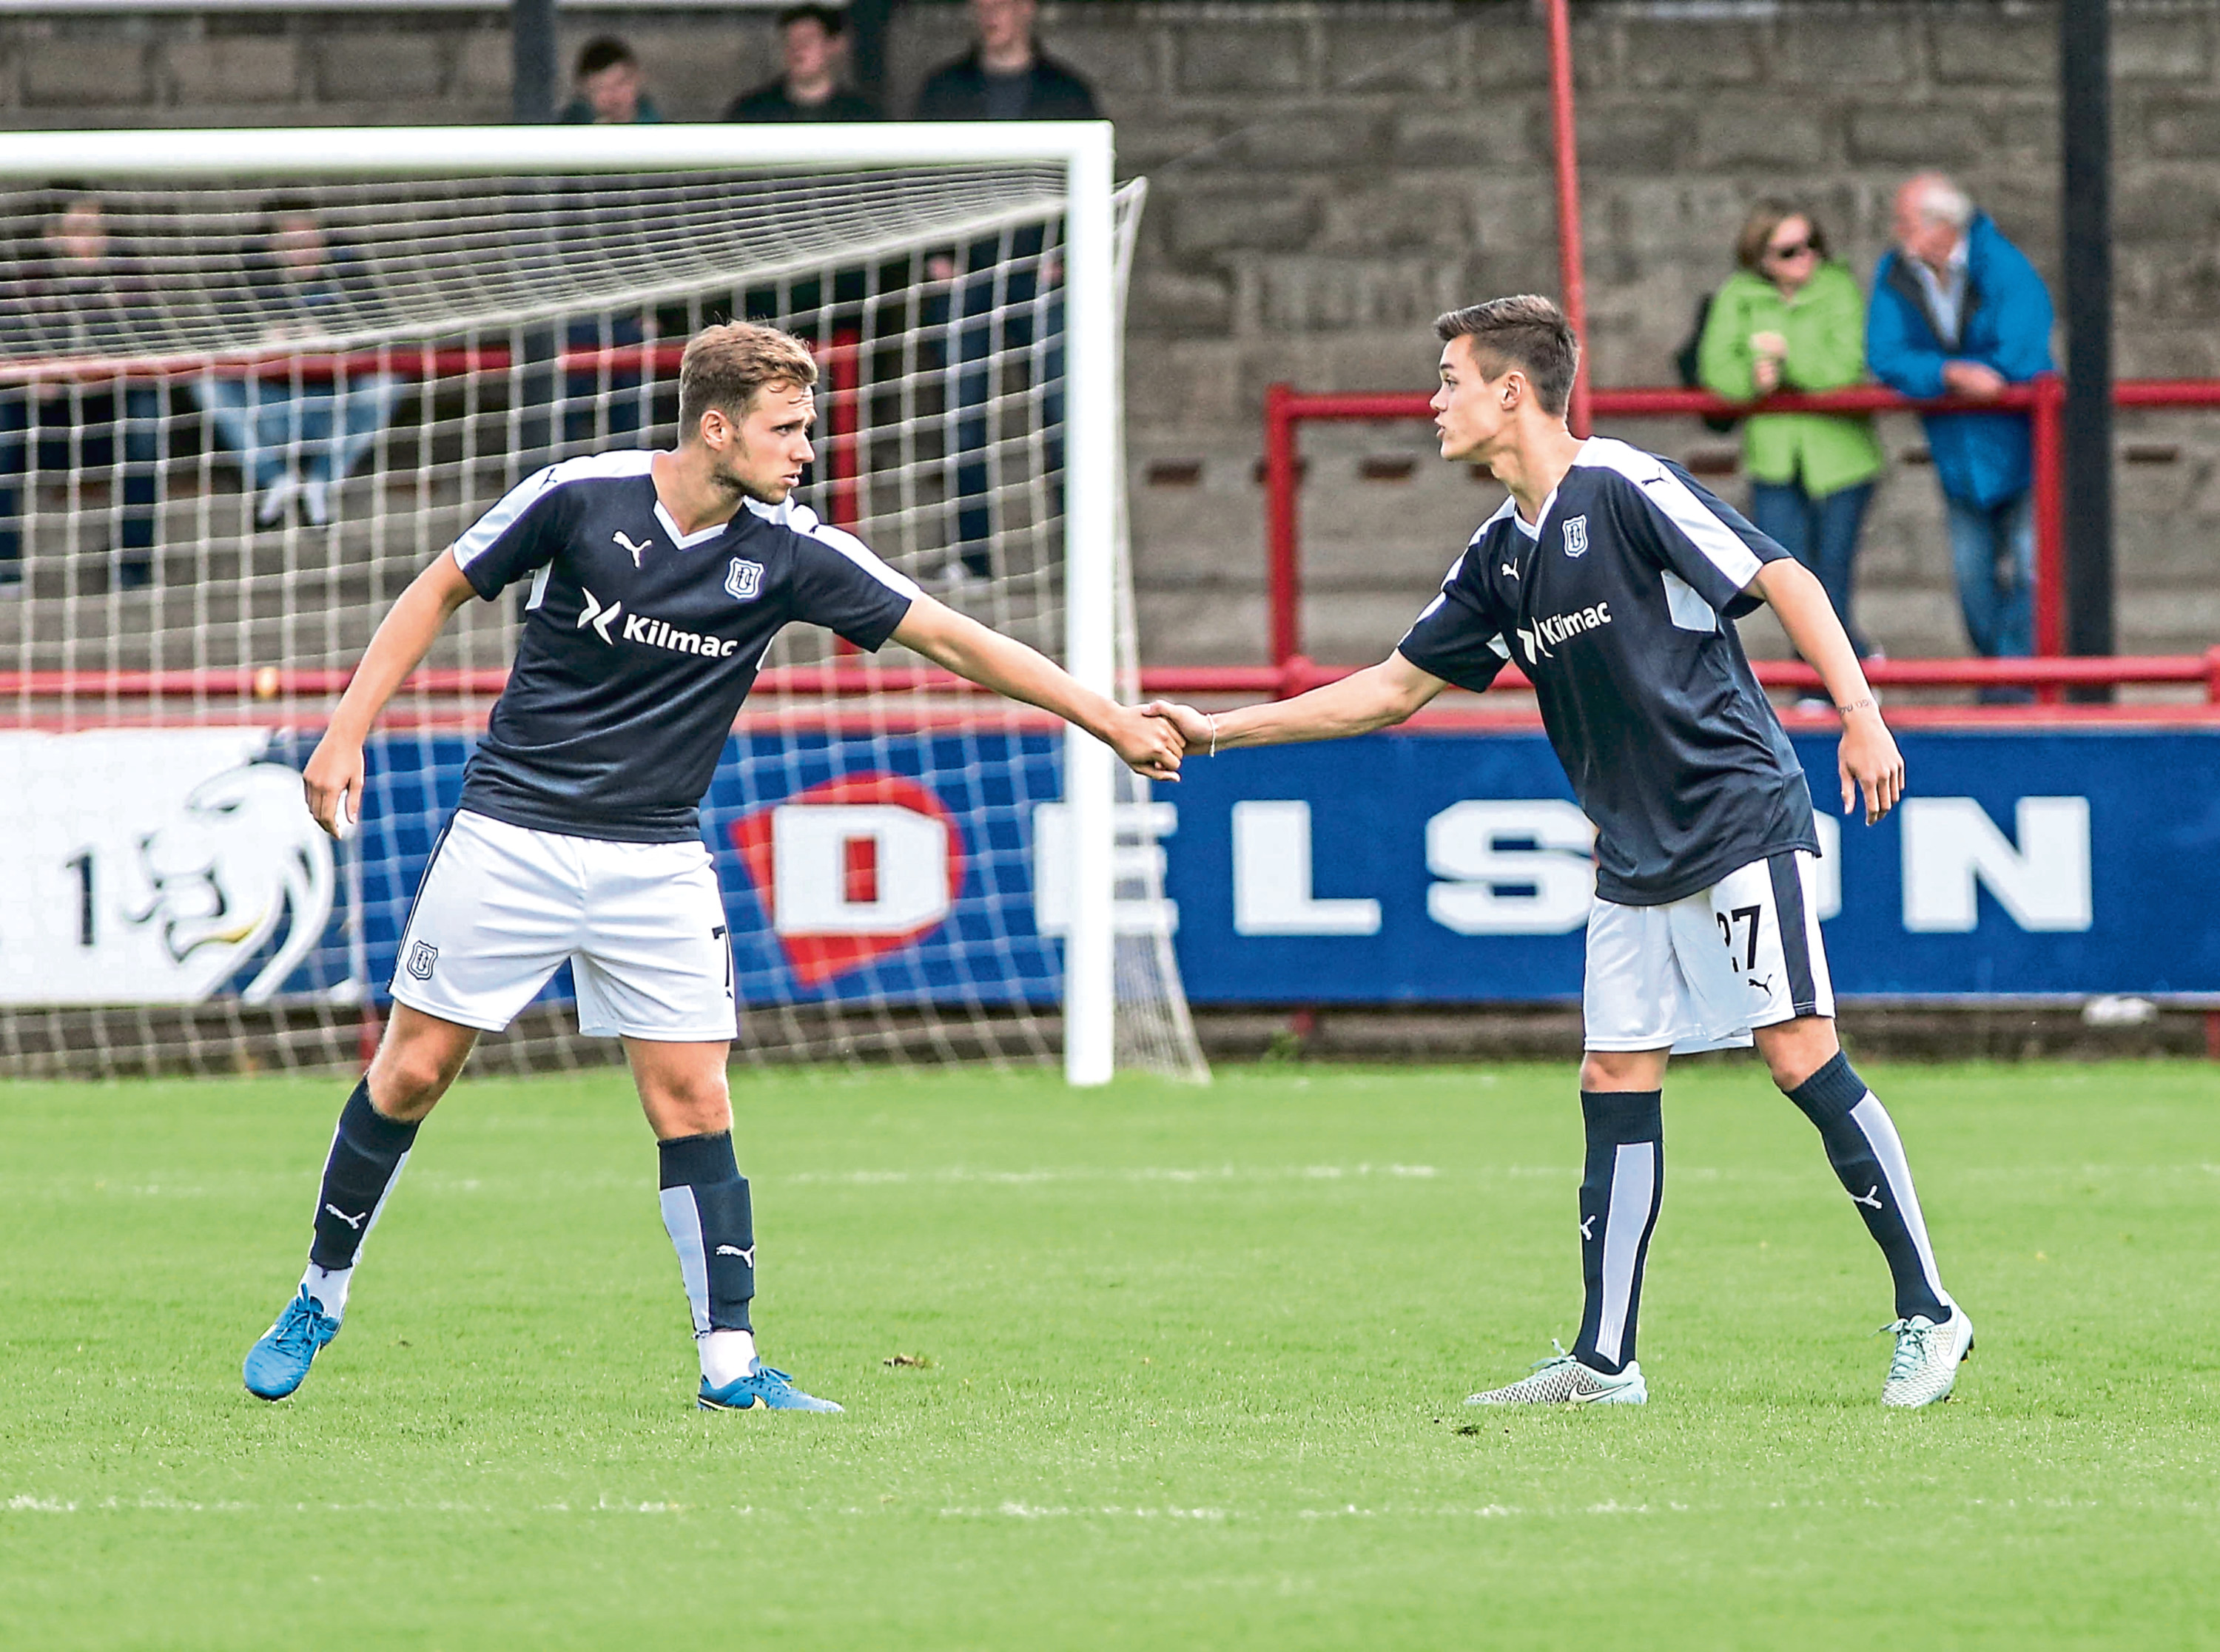 Jesse Curran (right) is welcomed on to the pitch by now Kilmarnock man Greg Stewart as the Aussie kid made his Dundee debut in a pre-season friendly at Brechin back in 2015